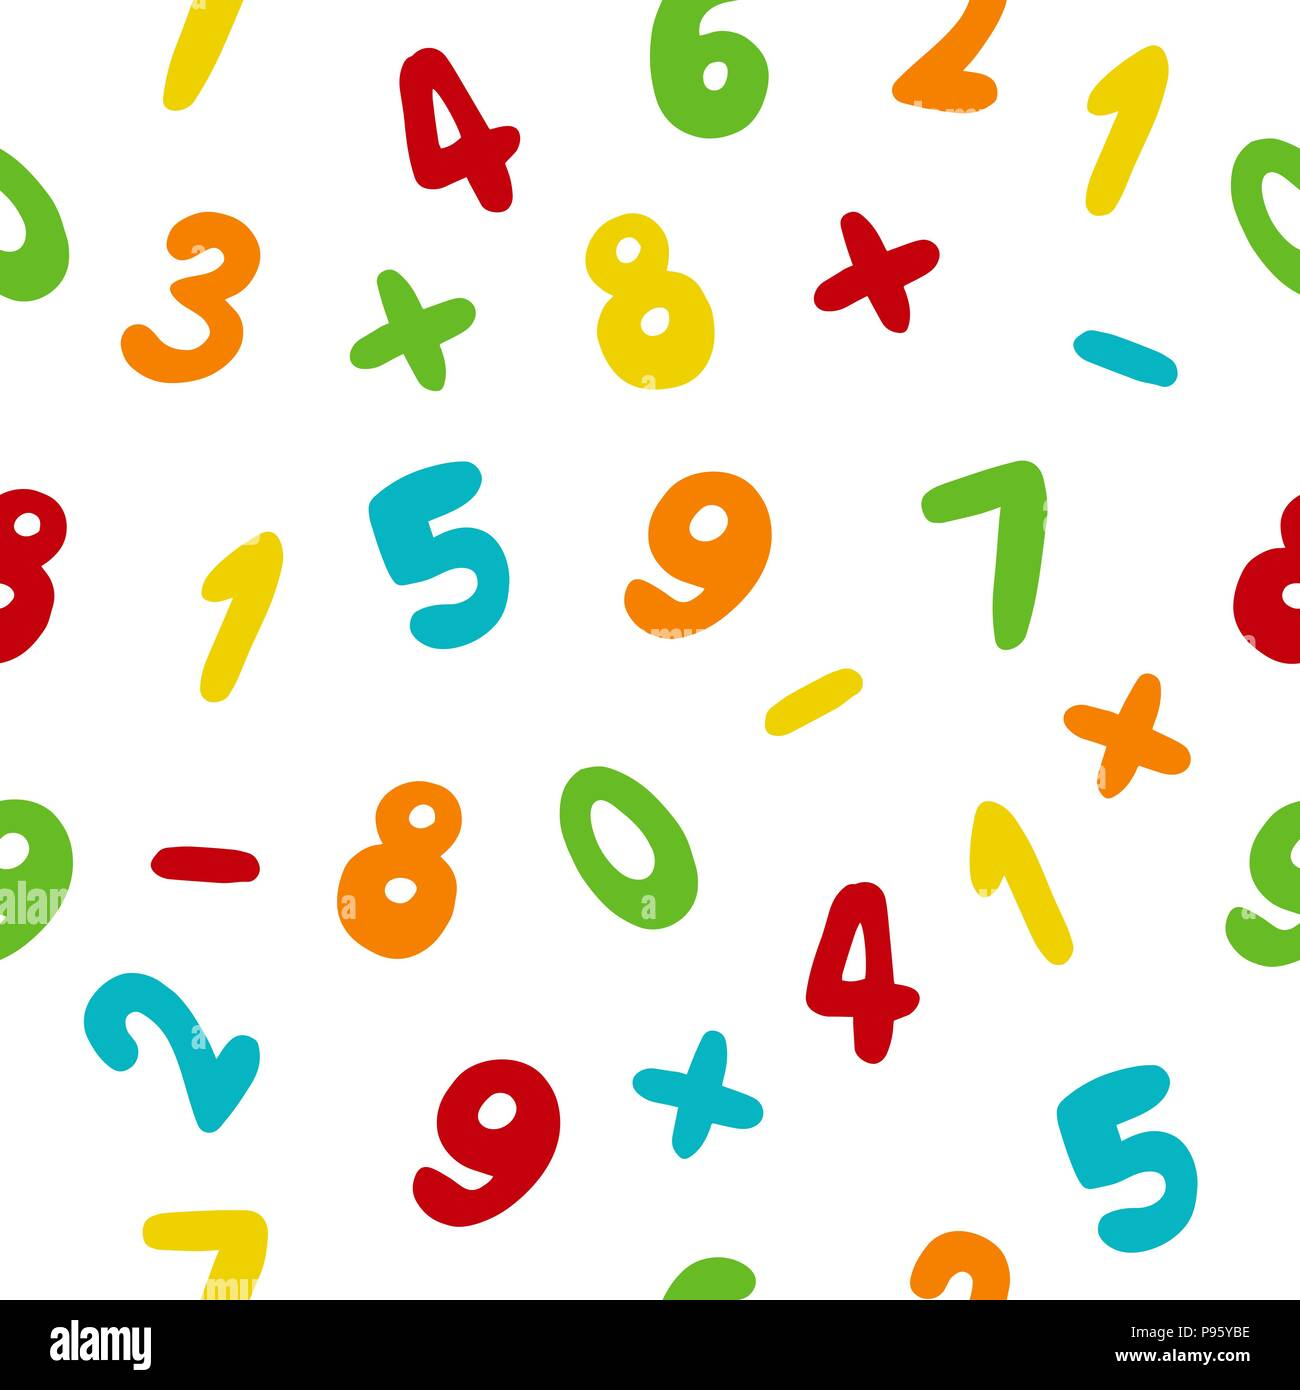 Vector seamless pattern with hand drawn colorful numbers - Stock Image